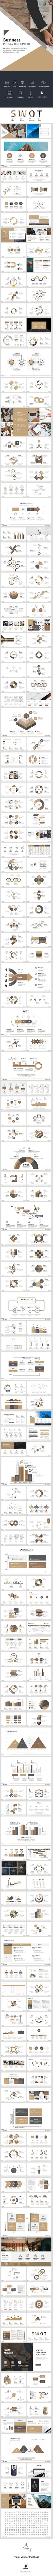 Swot Analysis - Business Infographic PowerPoint Presentation Template - 250 Unique Custom SWOT Analysis Slides - Aspect Ratio - All Graphic Resizable and Editable Best Powerpoint Presentations, Infographic Powerpoint, Professional Powerpoint Templates, Creative Powerpoint Templates, Powerpoint Presentation Templates, Infographics, Change Picture, Swot Analysis